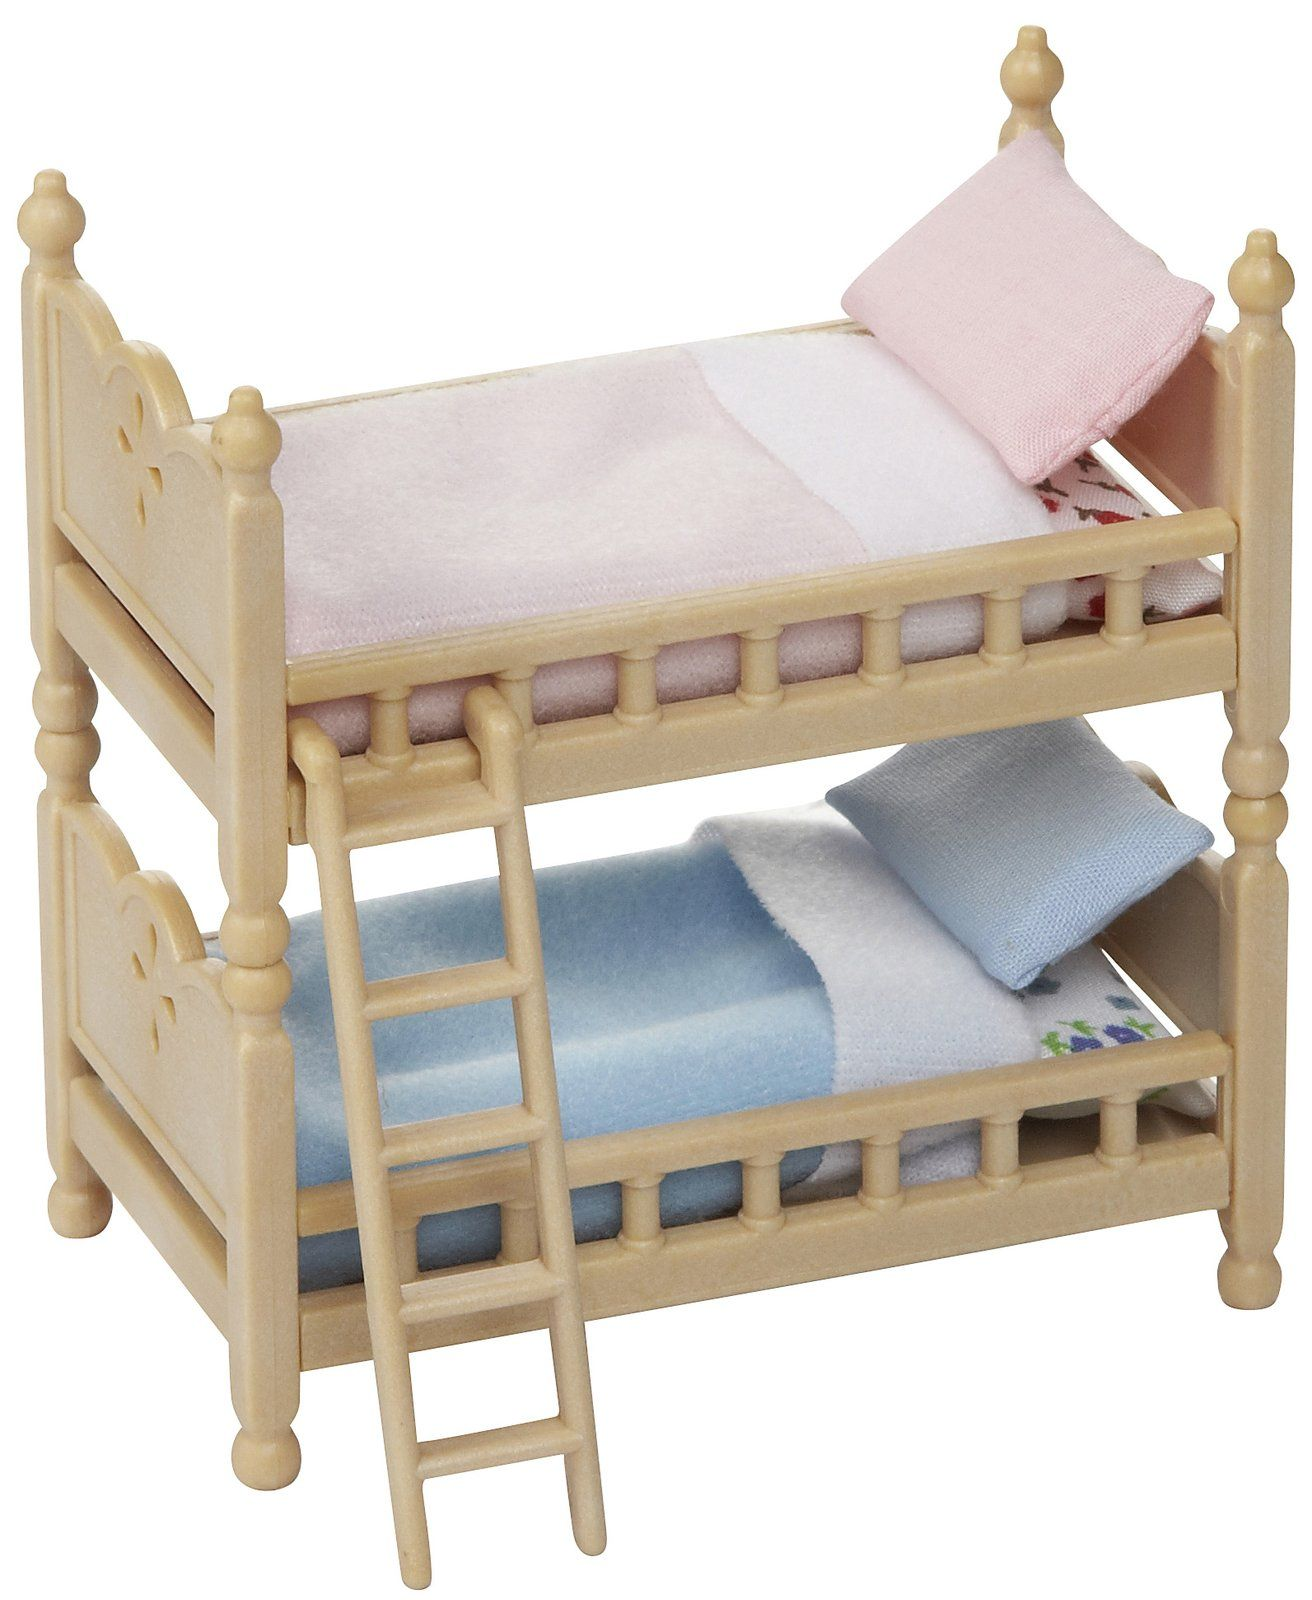 Calico Critters Bunk Beds Free Shipping Bunk Bed Sets Bed